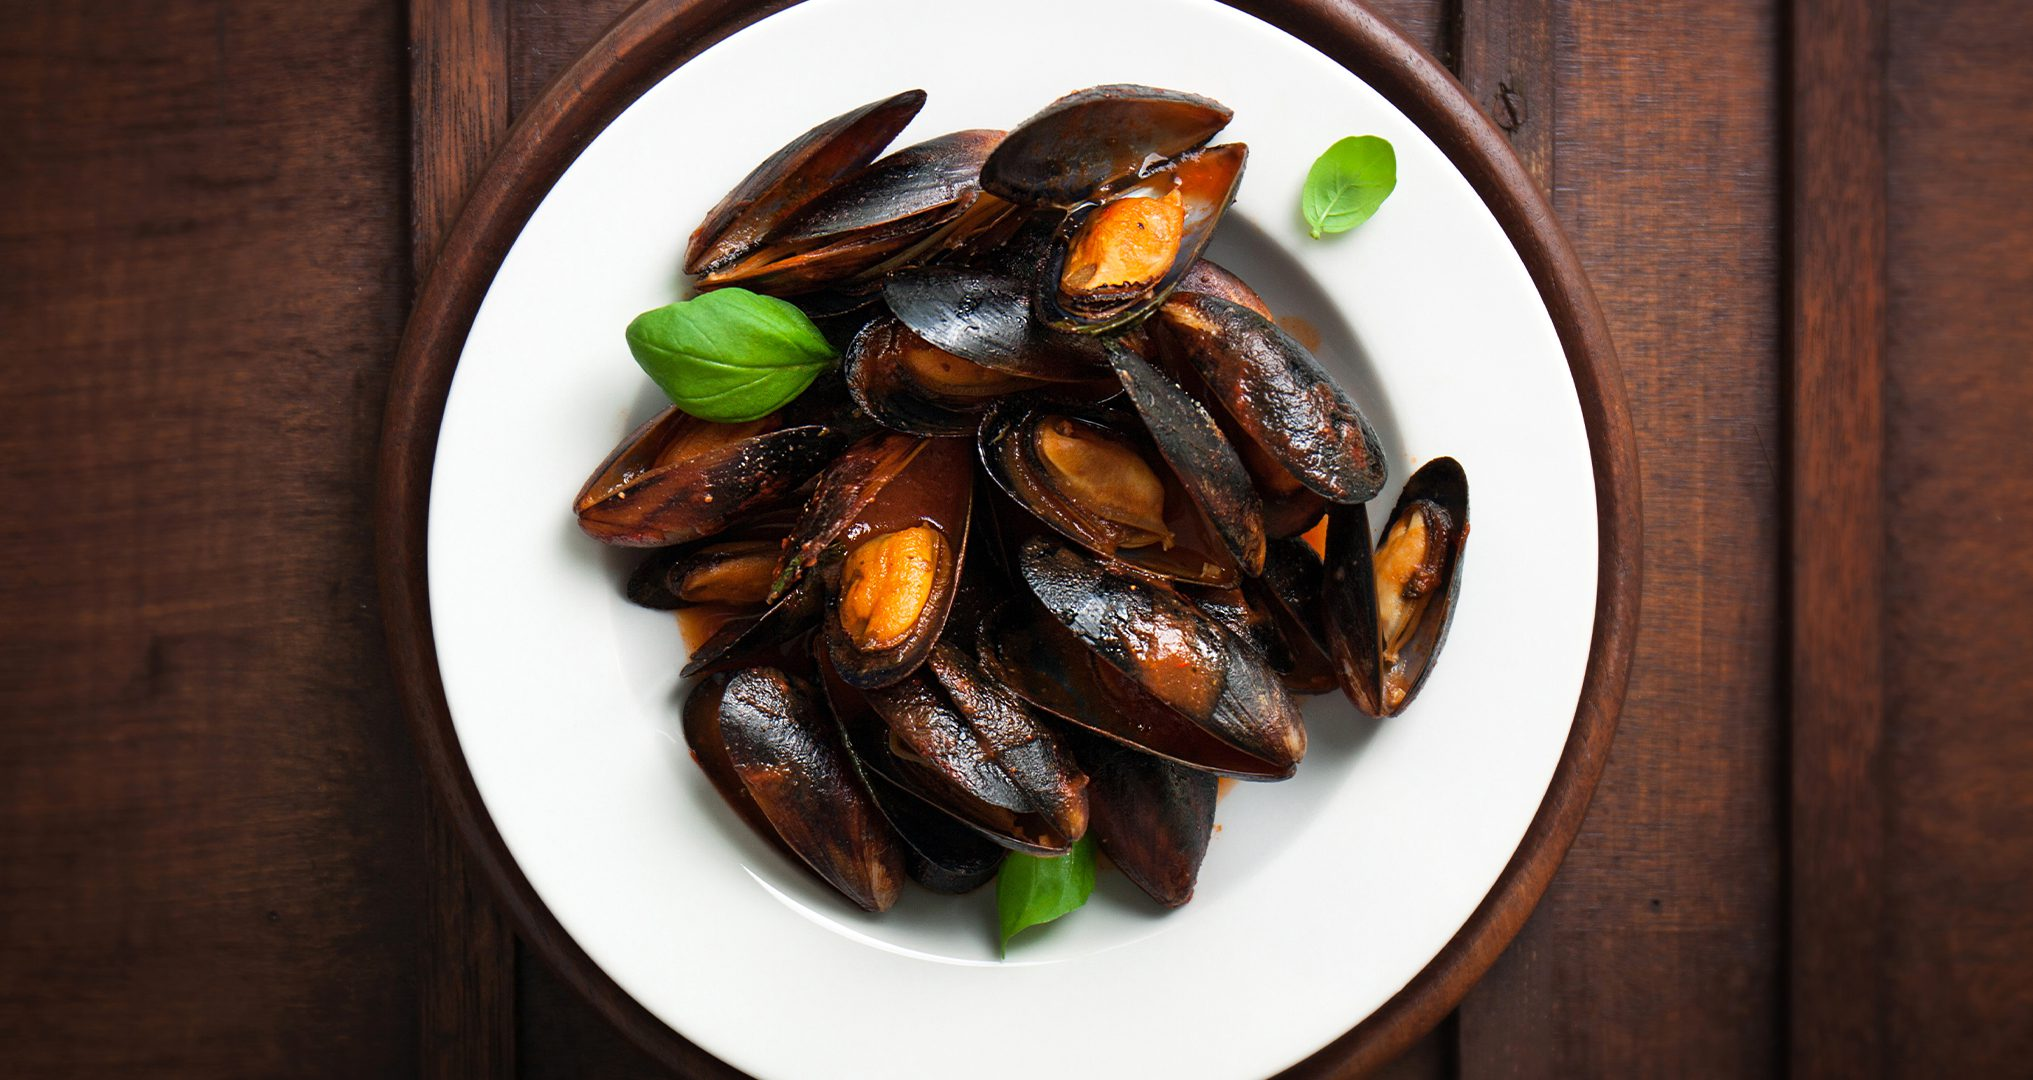 Freshly cooked mussels with a tomato wine sauce